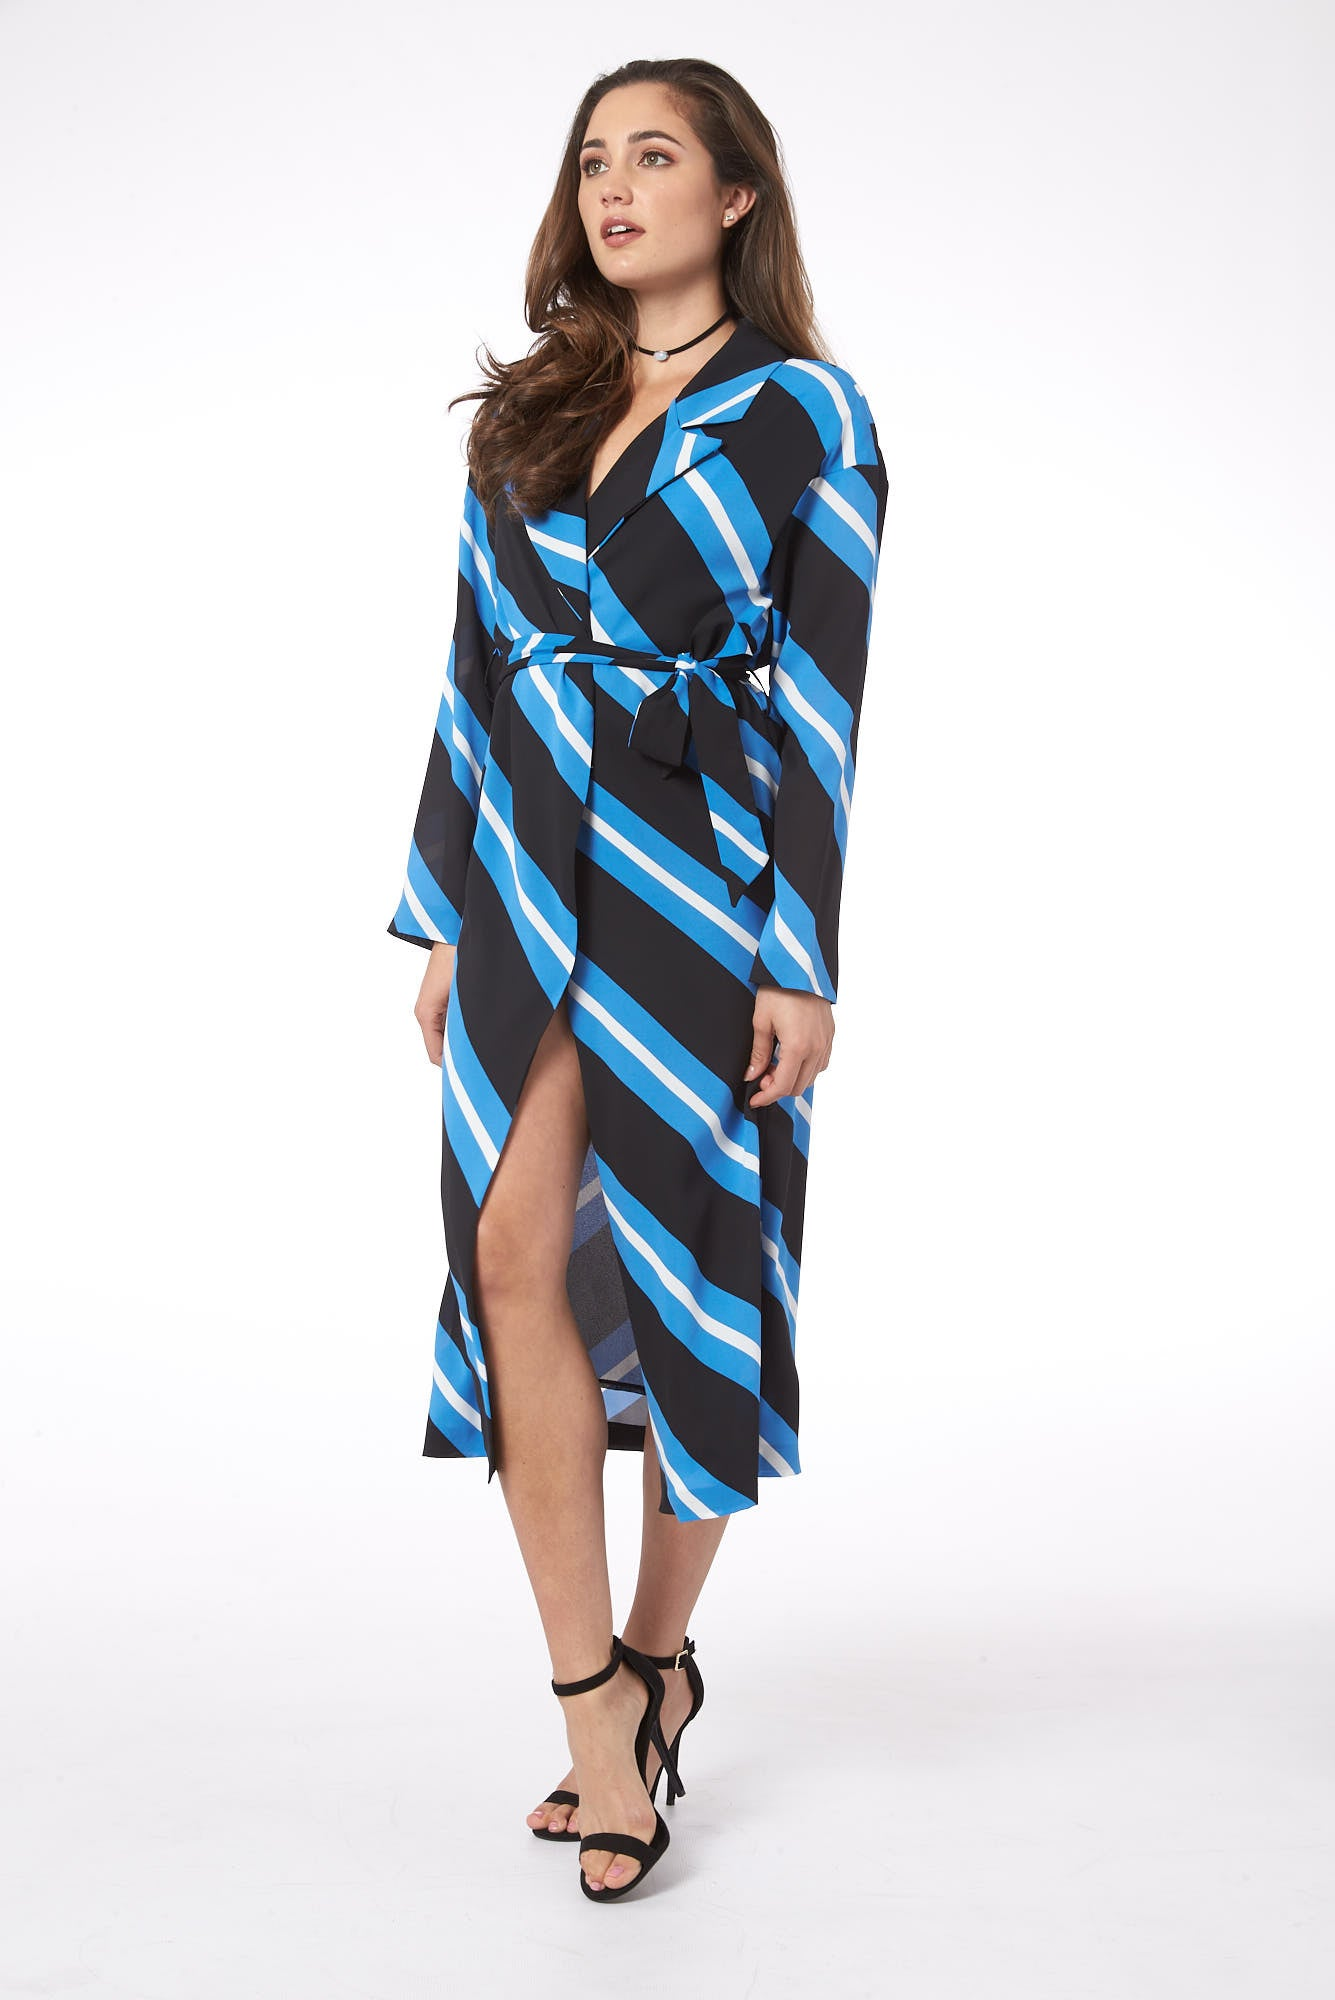 Make My Heart Flutter in Buenos Aires Tunic